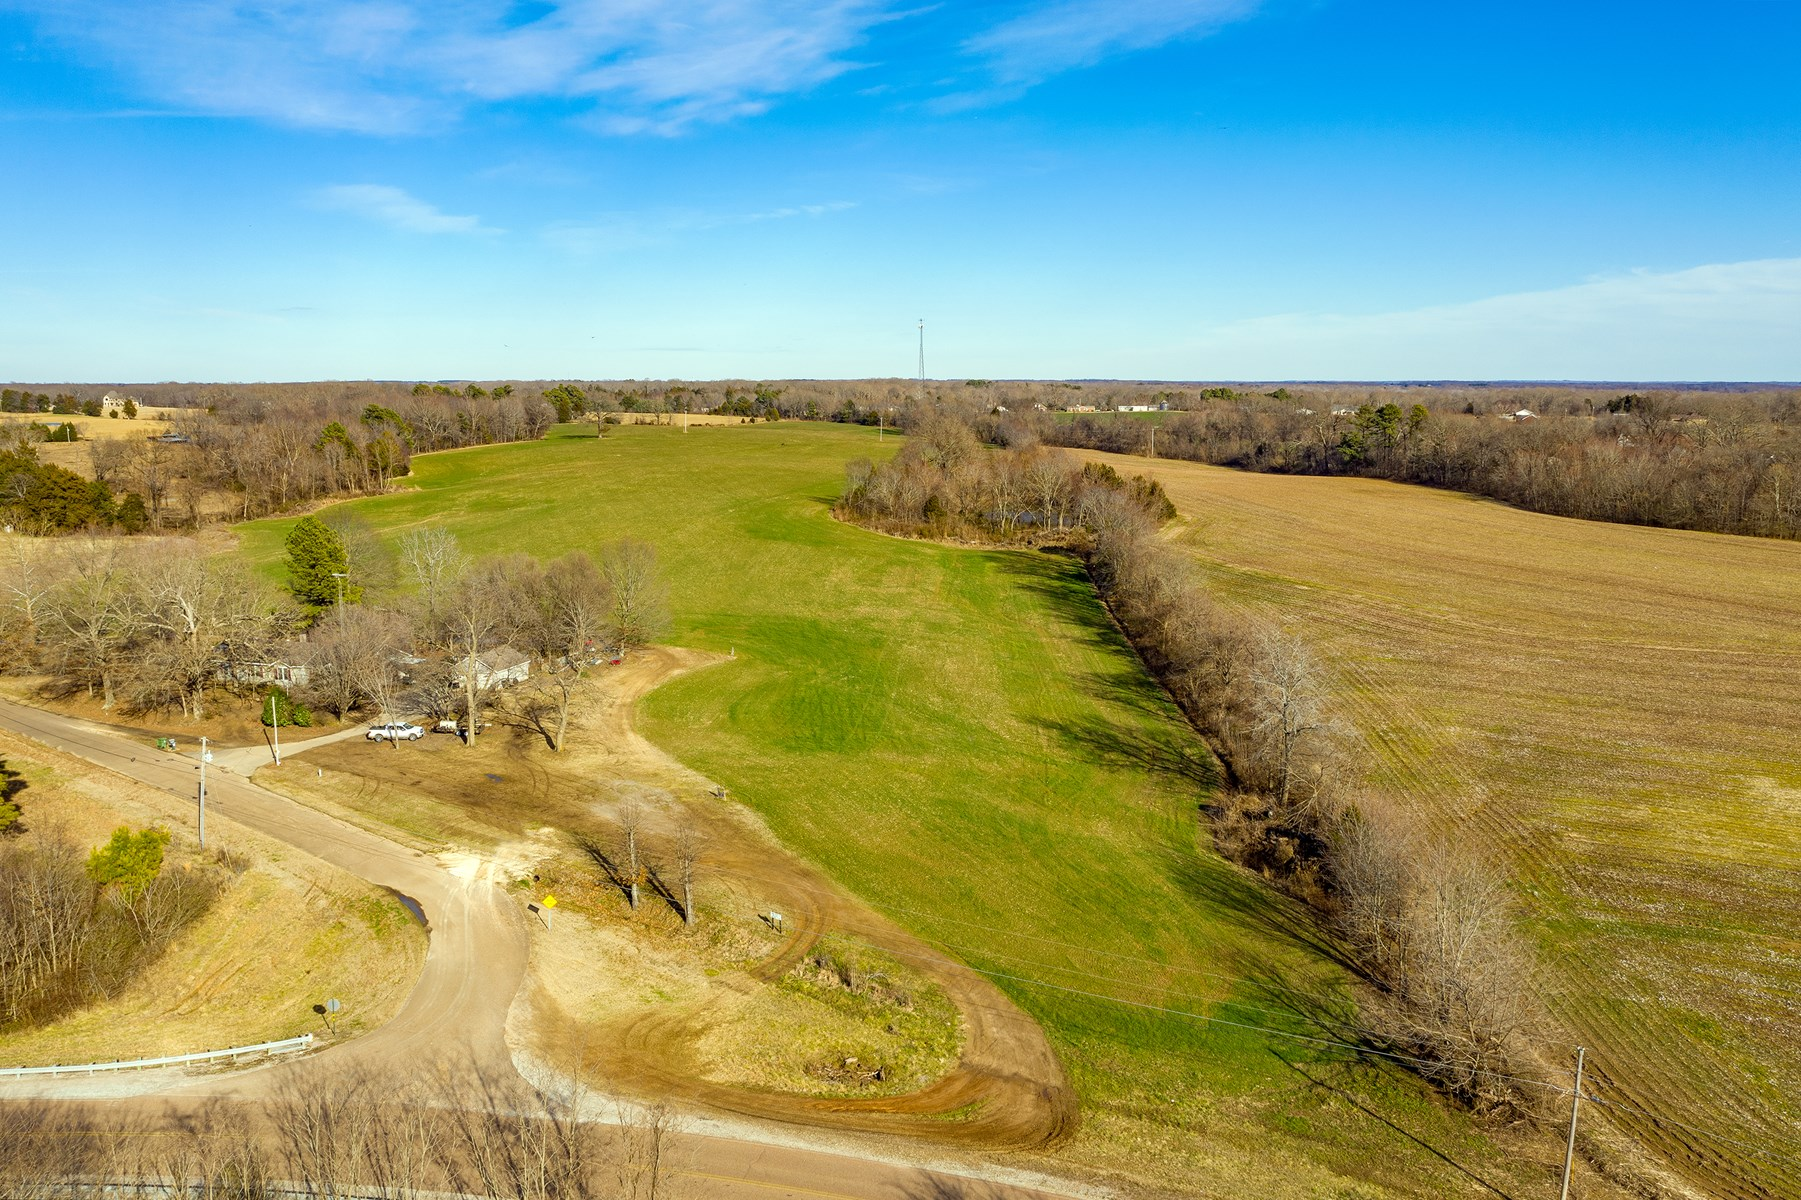 Land for Sale in Medina, TN South Gibson School District